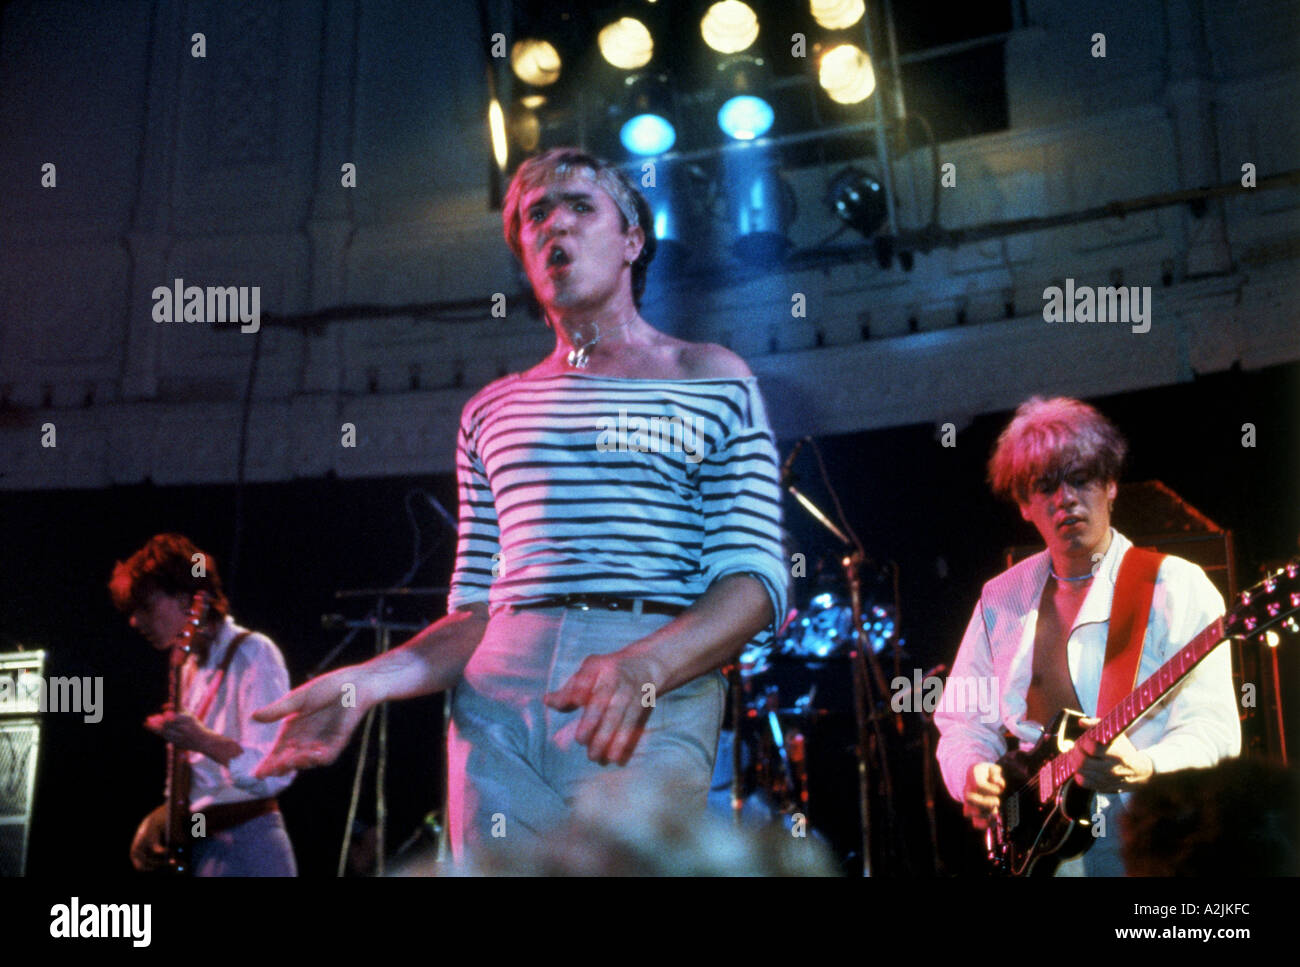 DURAN DURAN UK pop band in the 80s with Simon Le Bon as lead singer - Stock Image